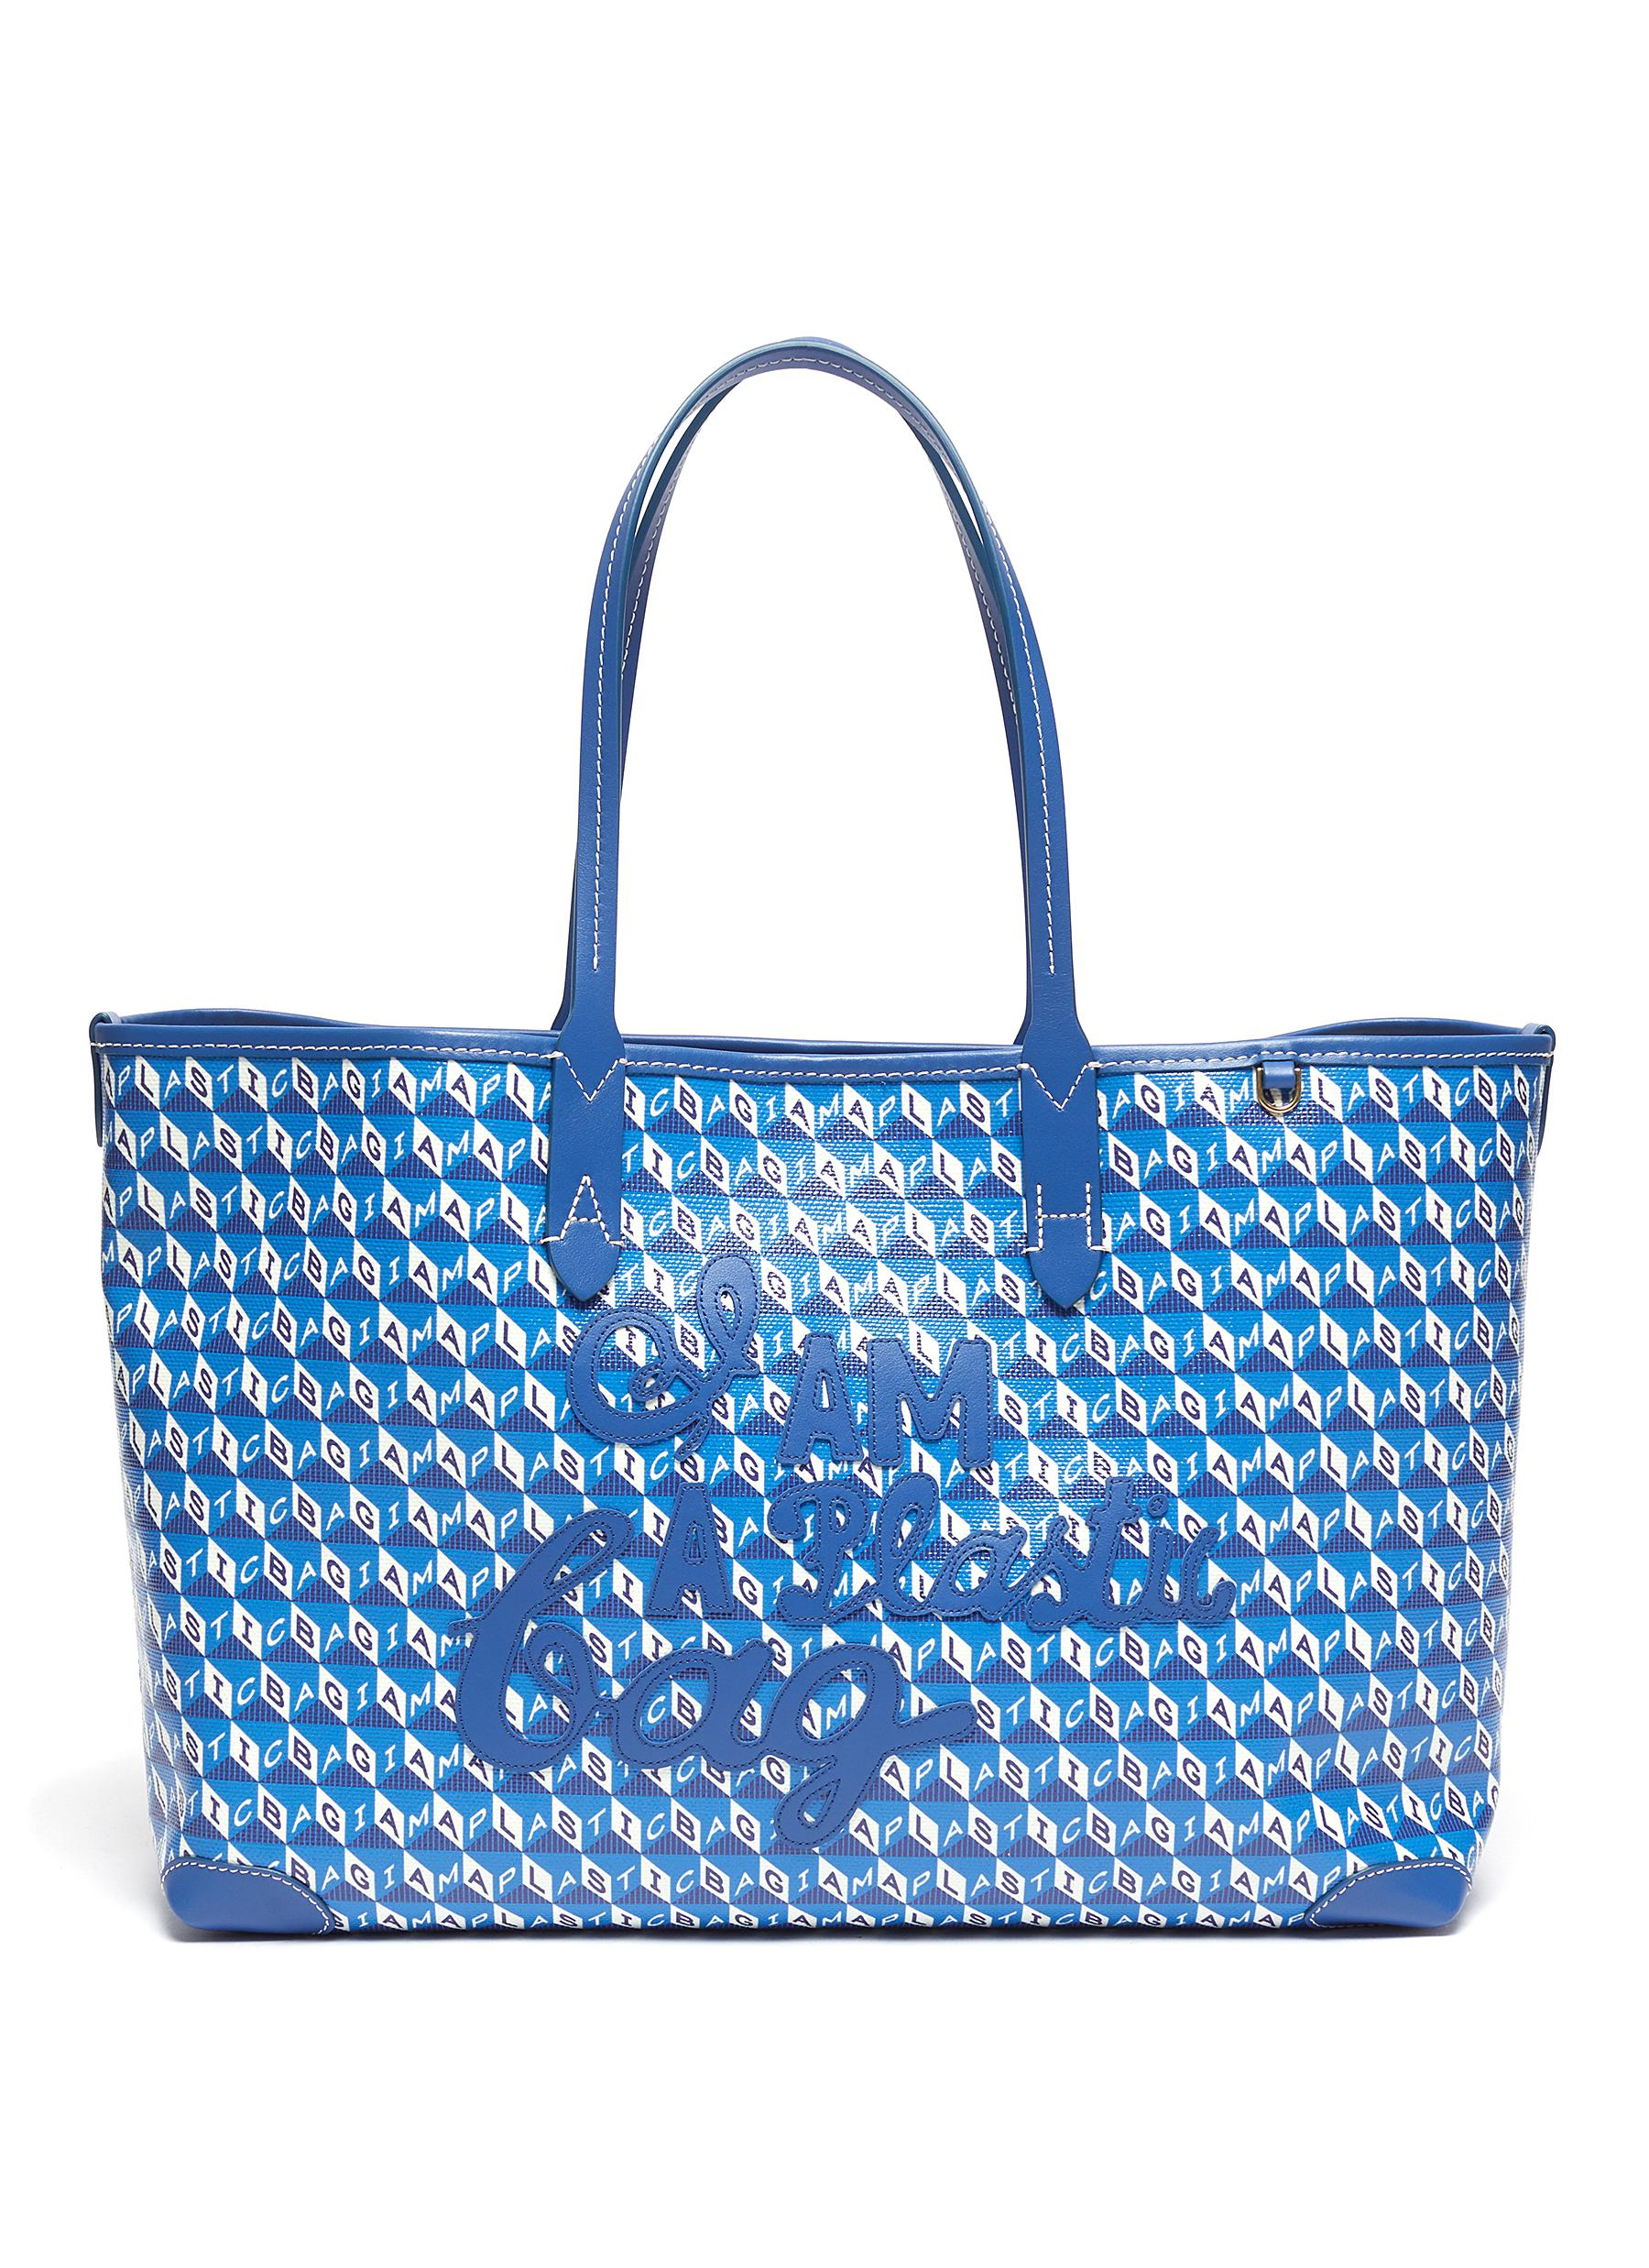 Anya Hindmarch 'I Am A Plastic Bag' Logo Appliqué Anagram Print Canvas Small Tote